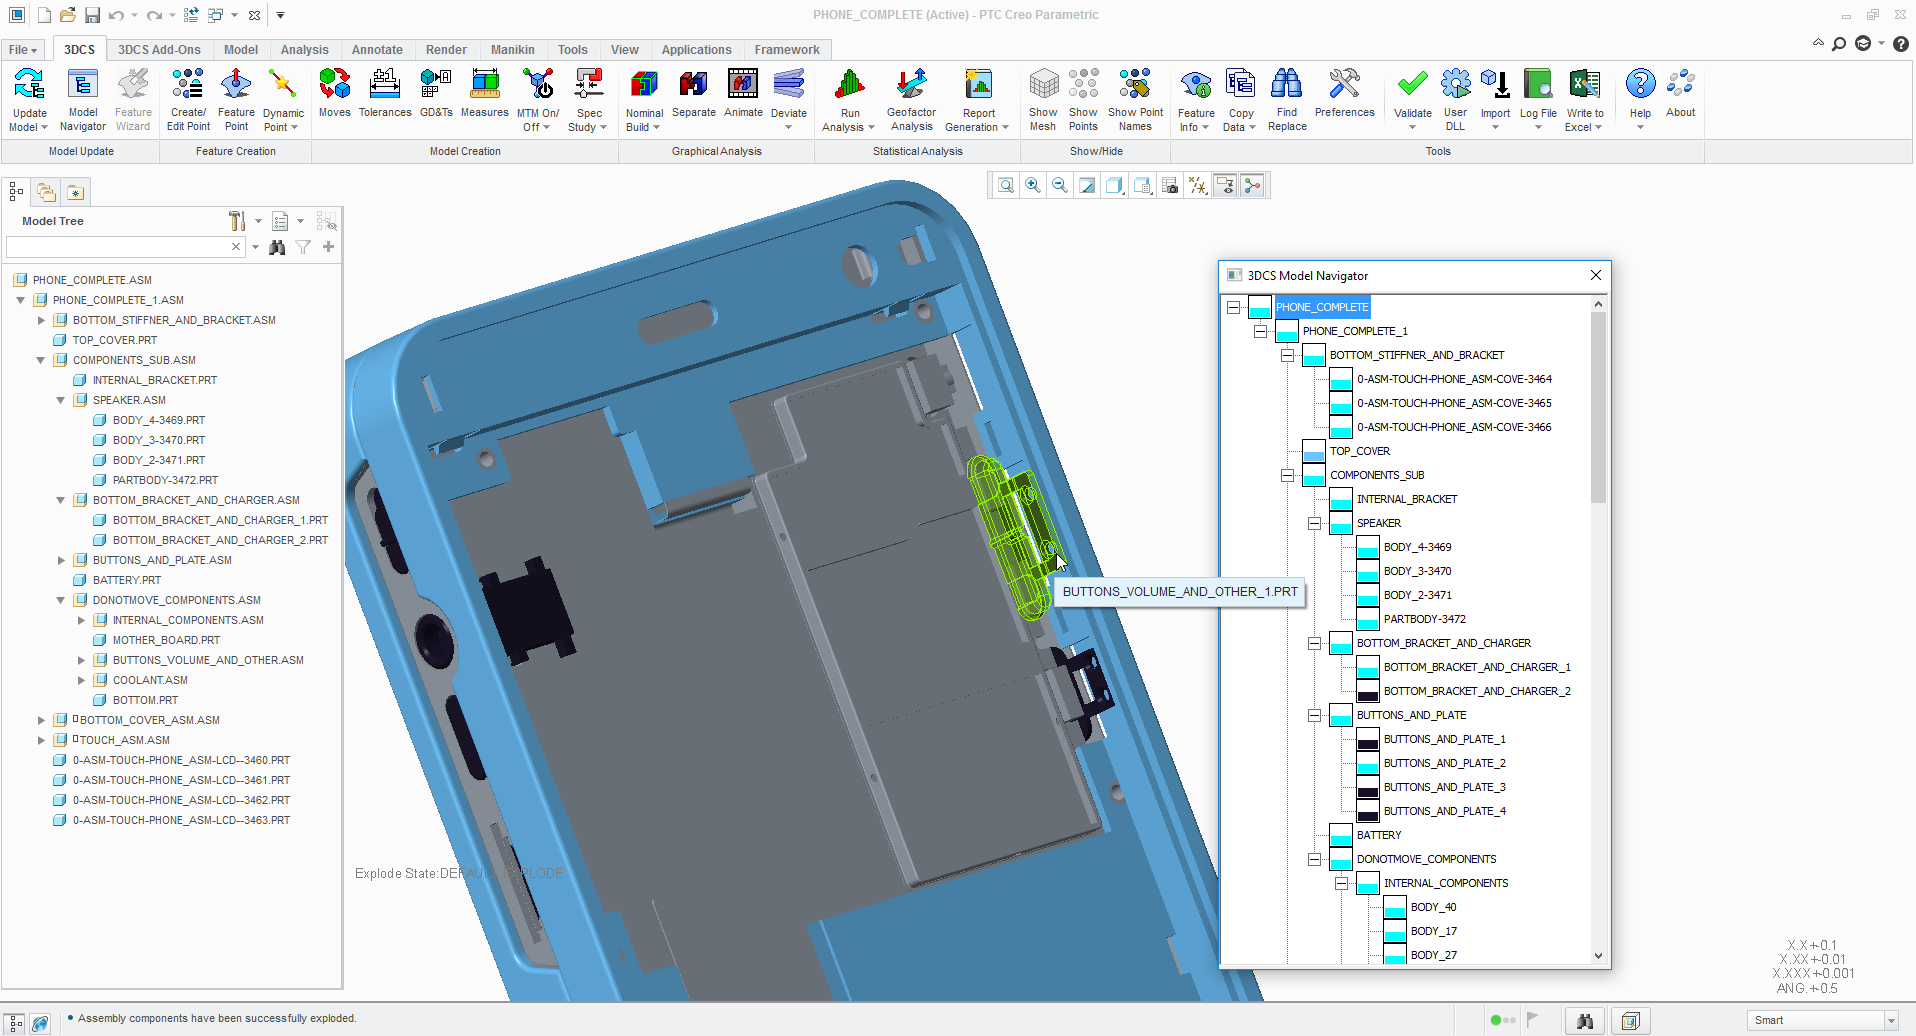 cell phone analysis - 3DCS integrated in PTC Creo Parametric